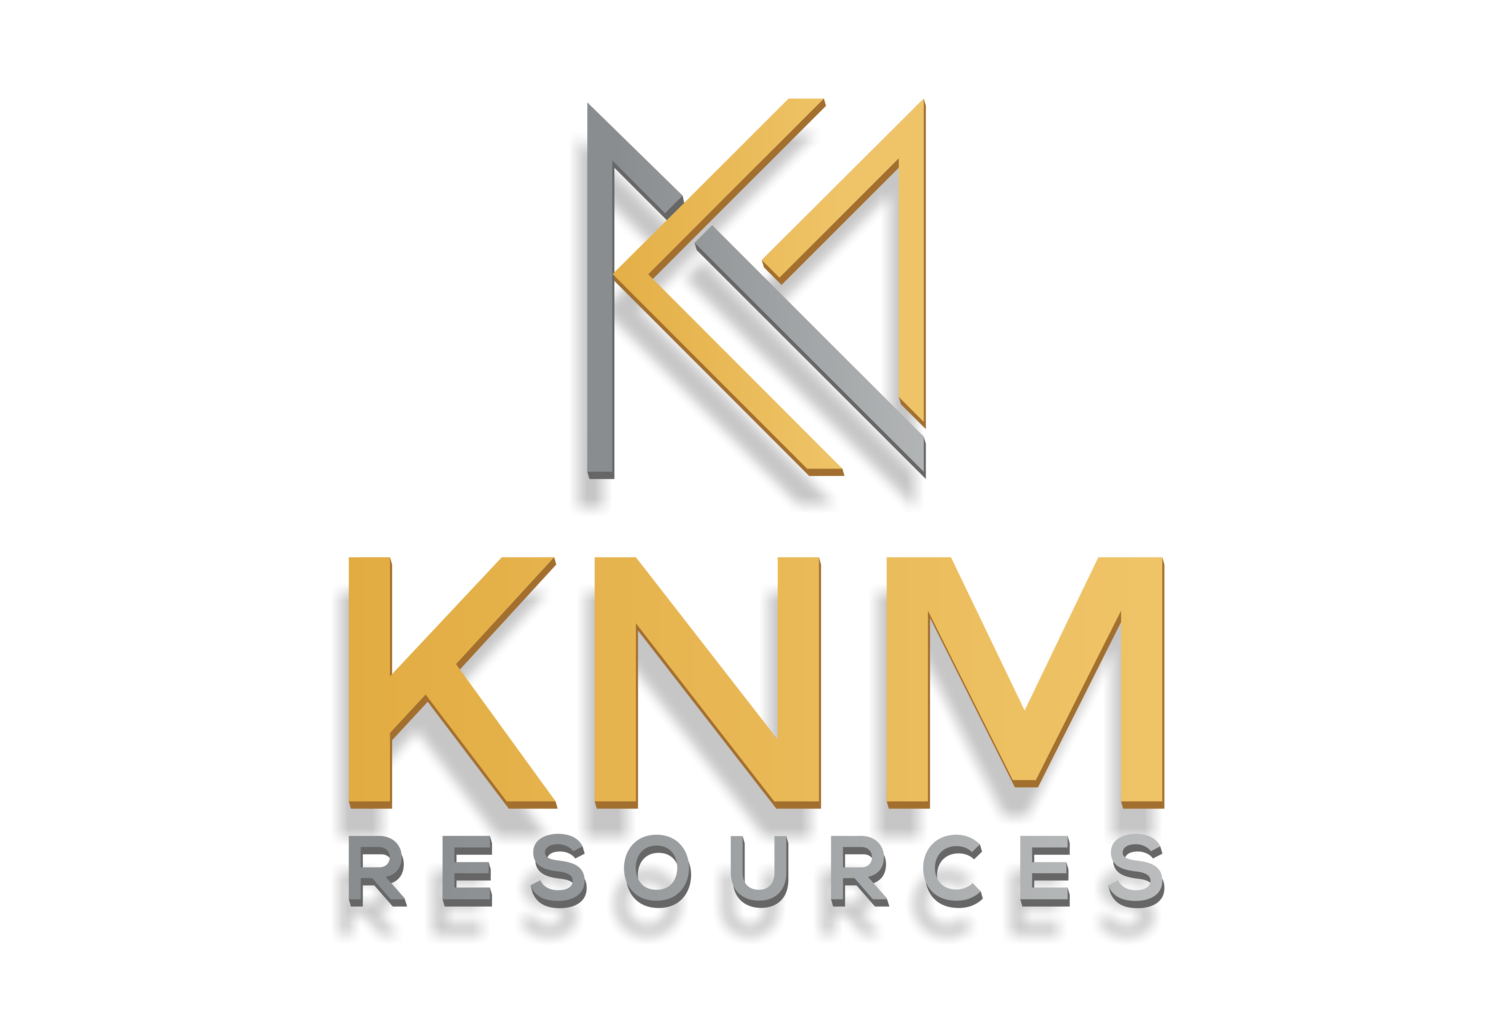 Inquiries knm resources knm resources 1betcityfo Images